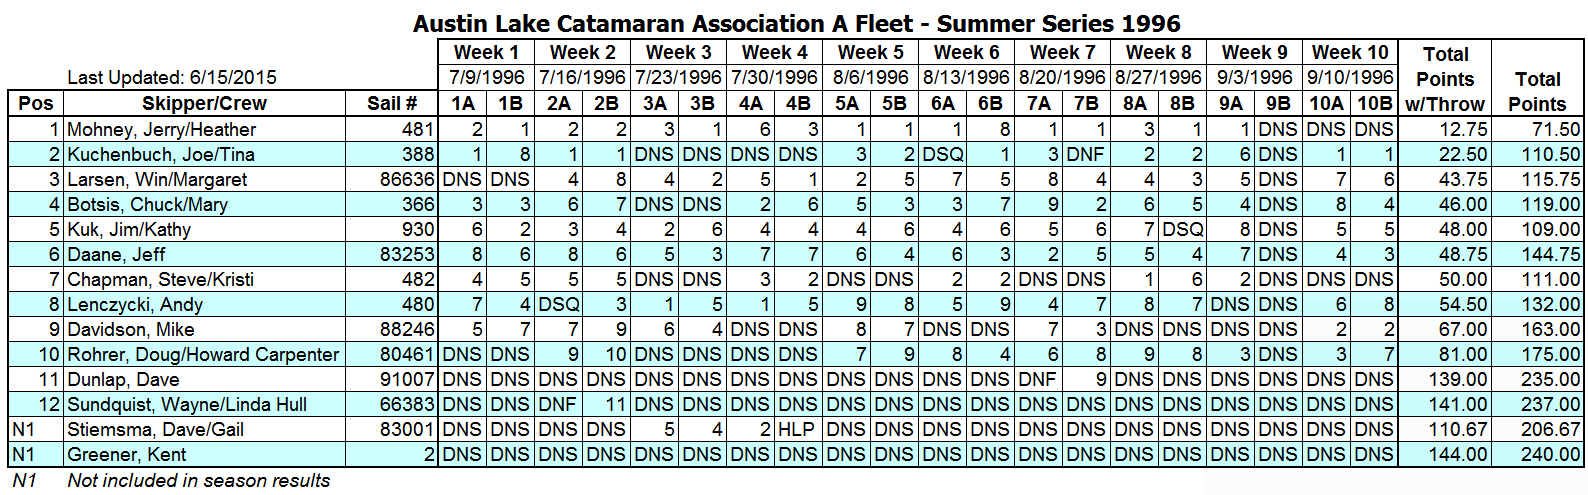 1996 Summer A Fleet Results